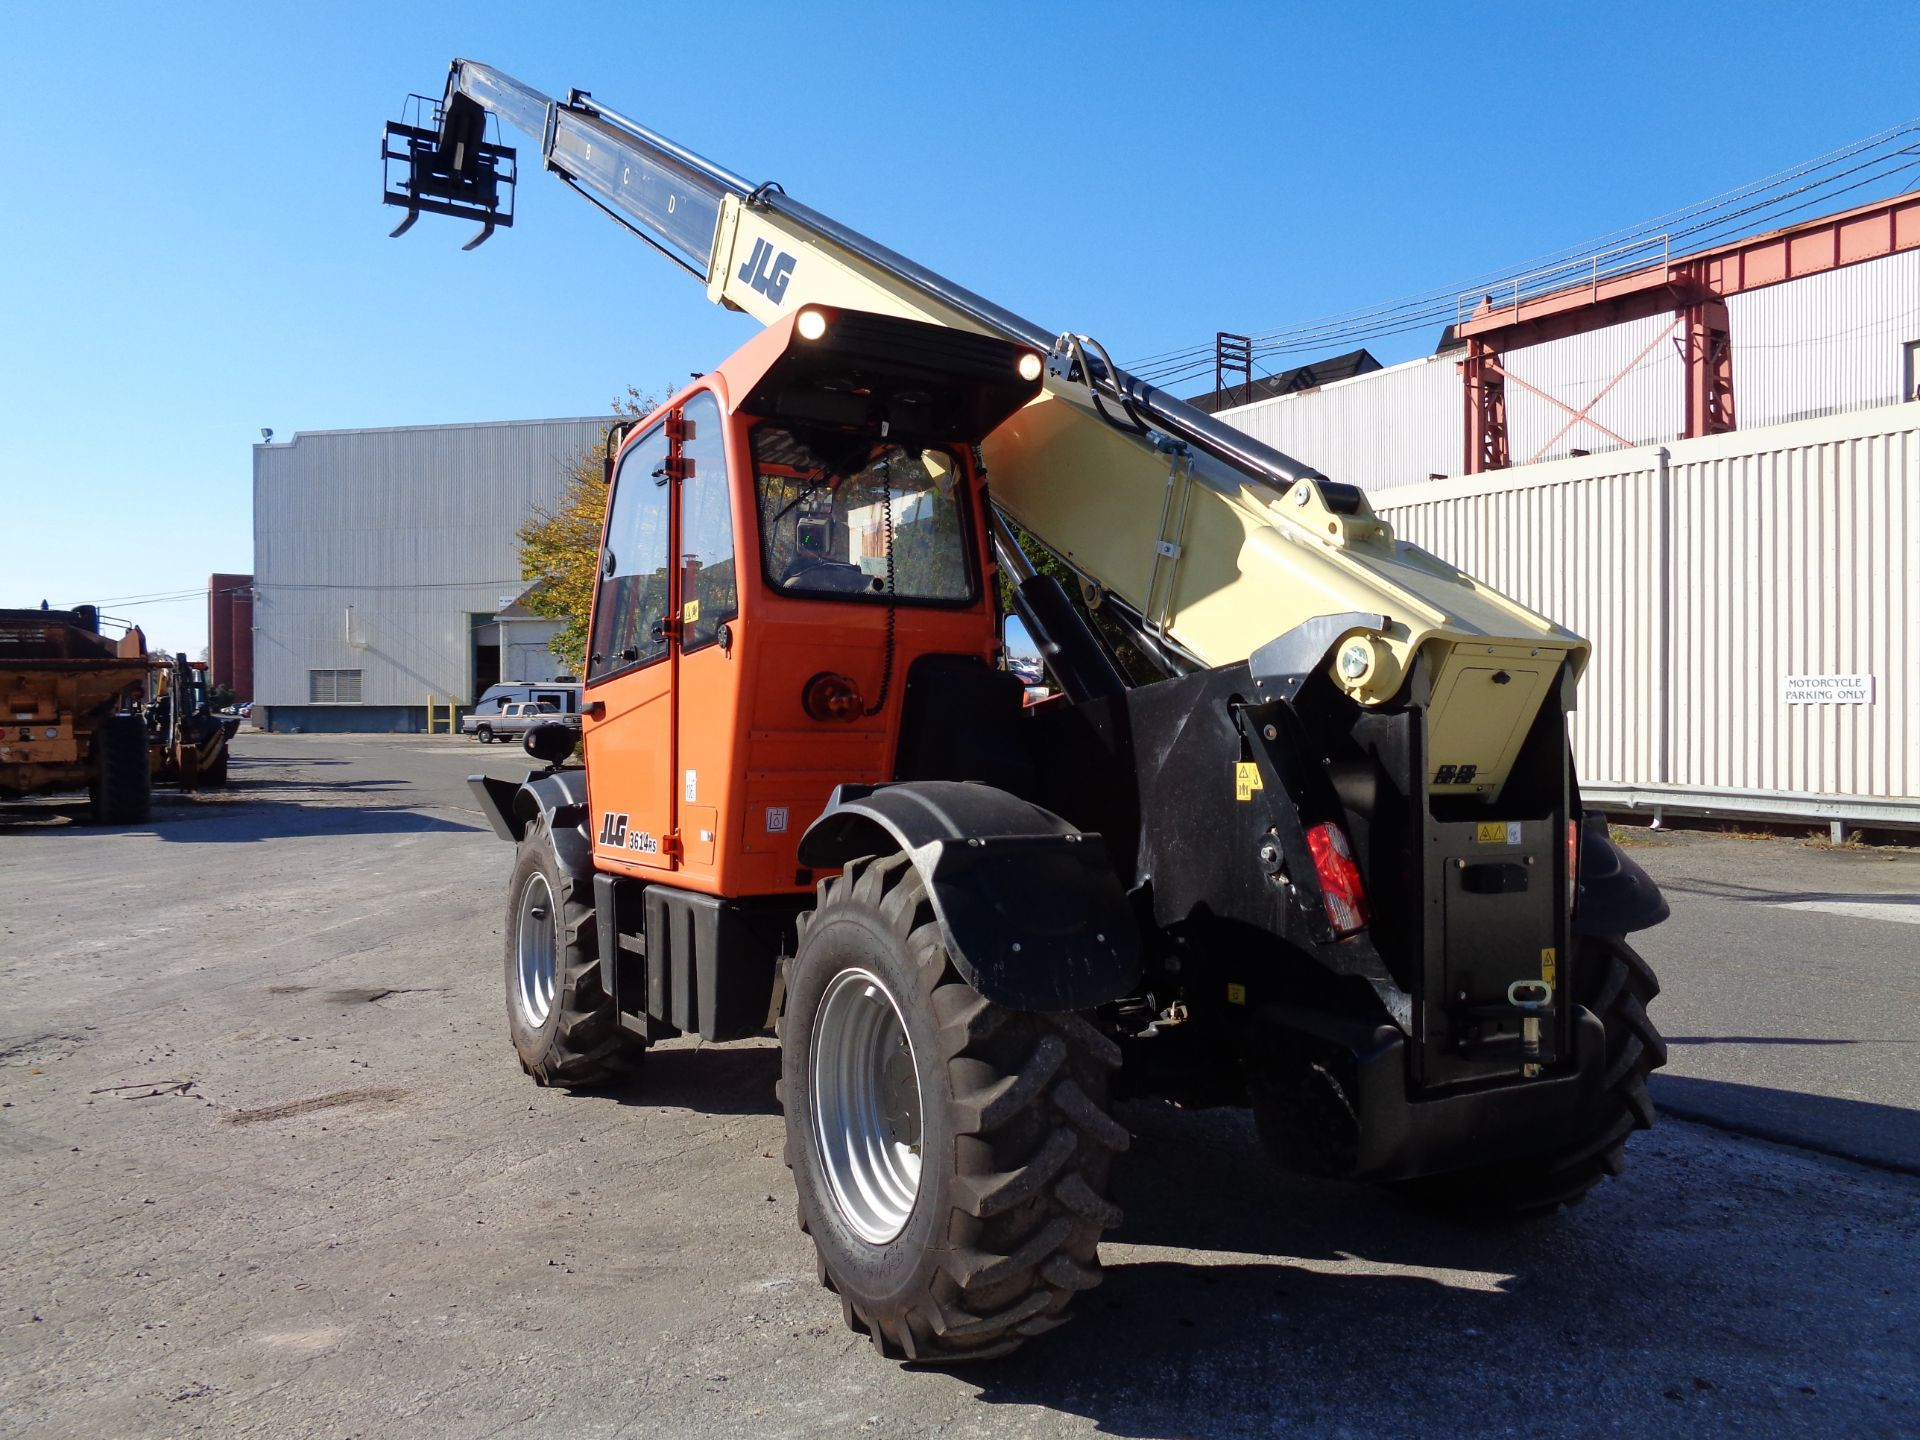 Lot 45c - 2016 JLG 3614RS 8,000 lb Telescopic Forklift